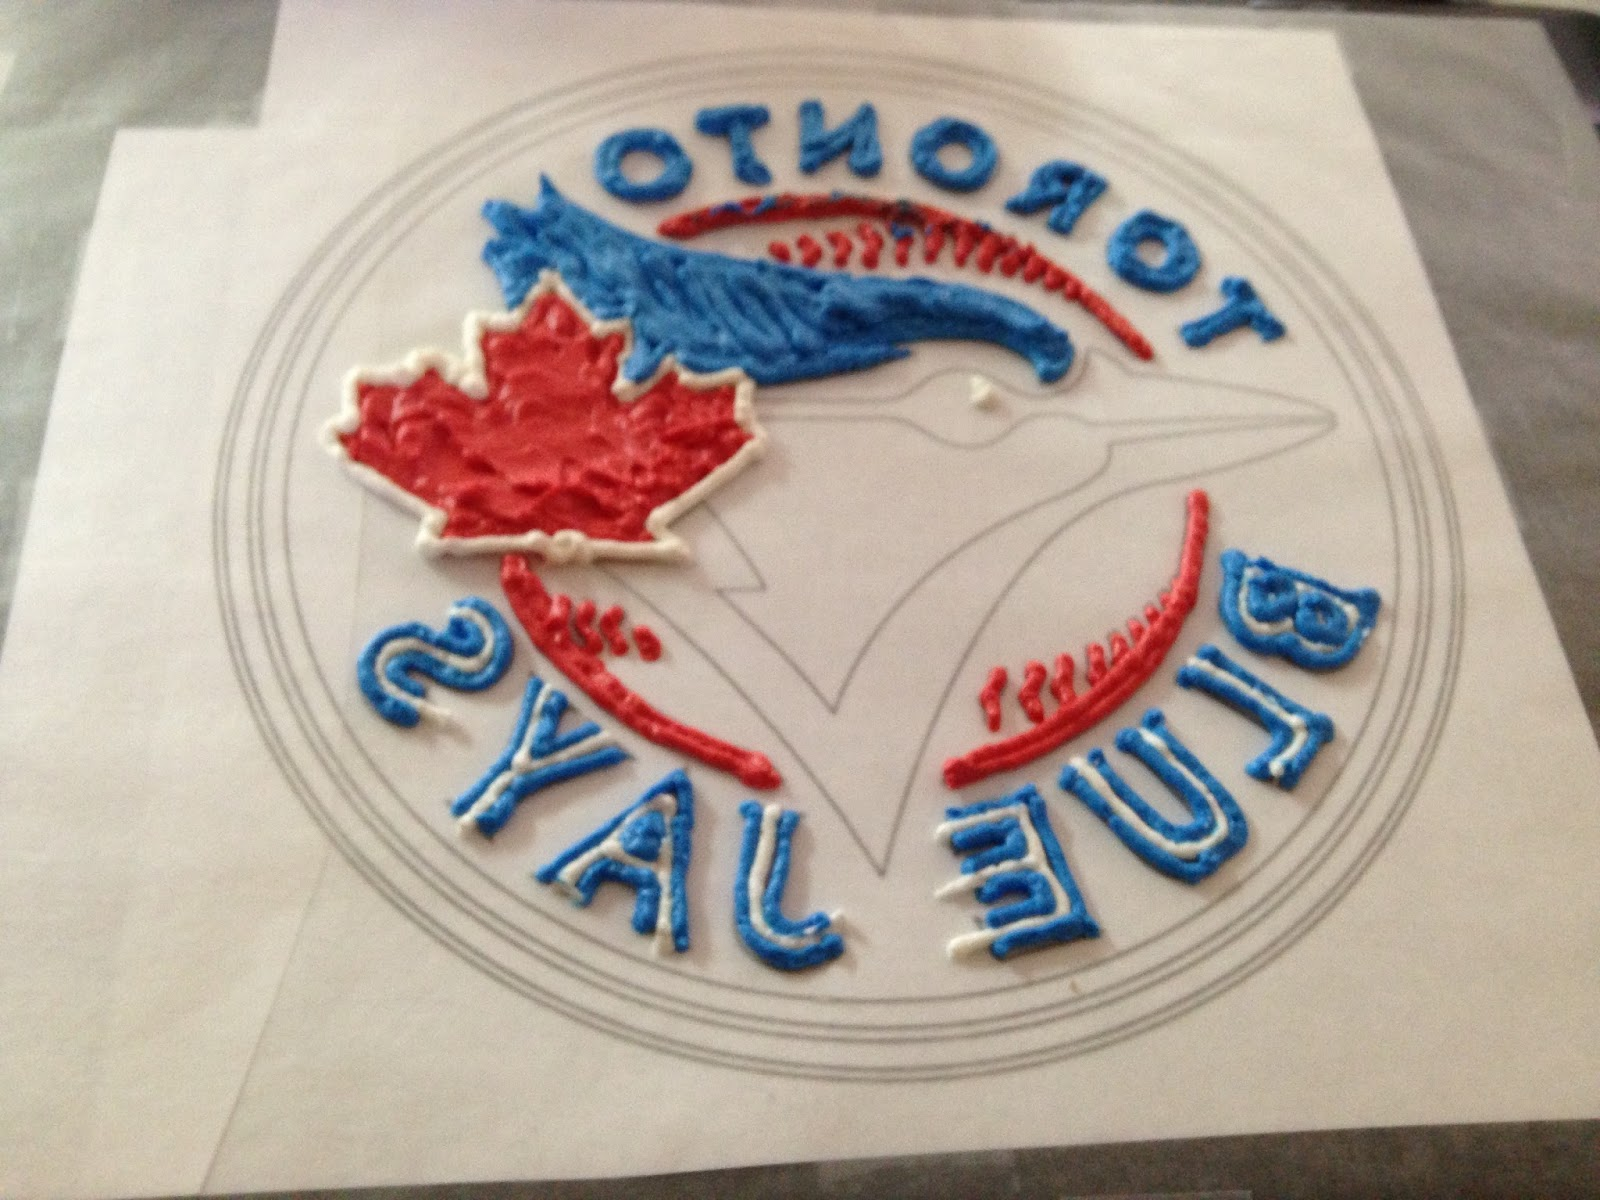 Blue Jays Cake Images : Crafting Baker: Toronto Blue Jays Birthday Cake